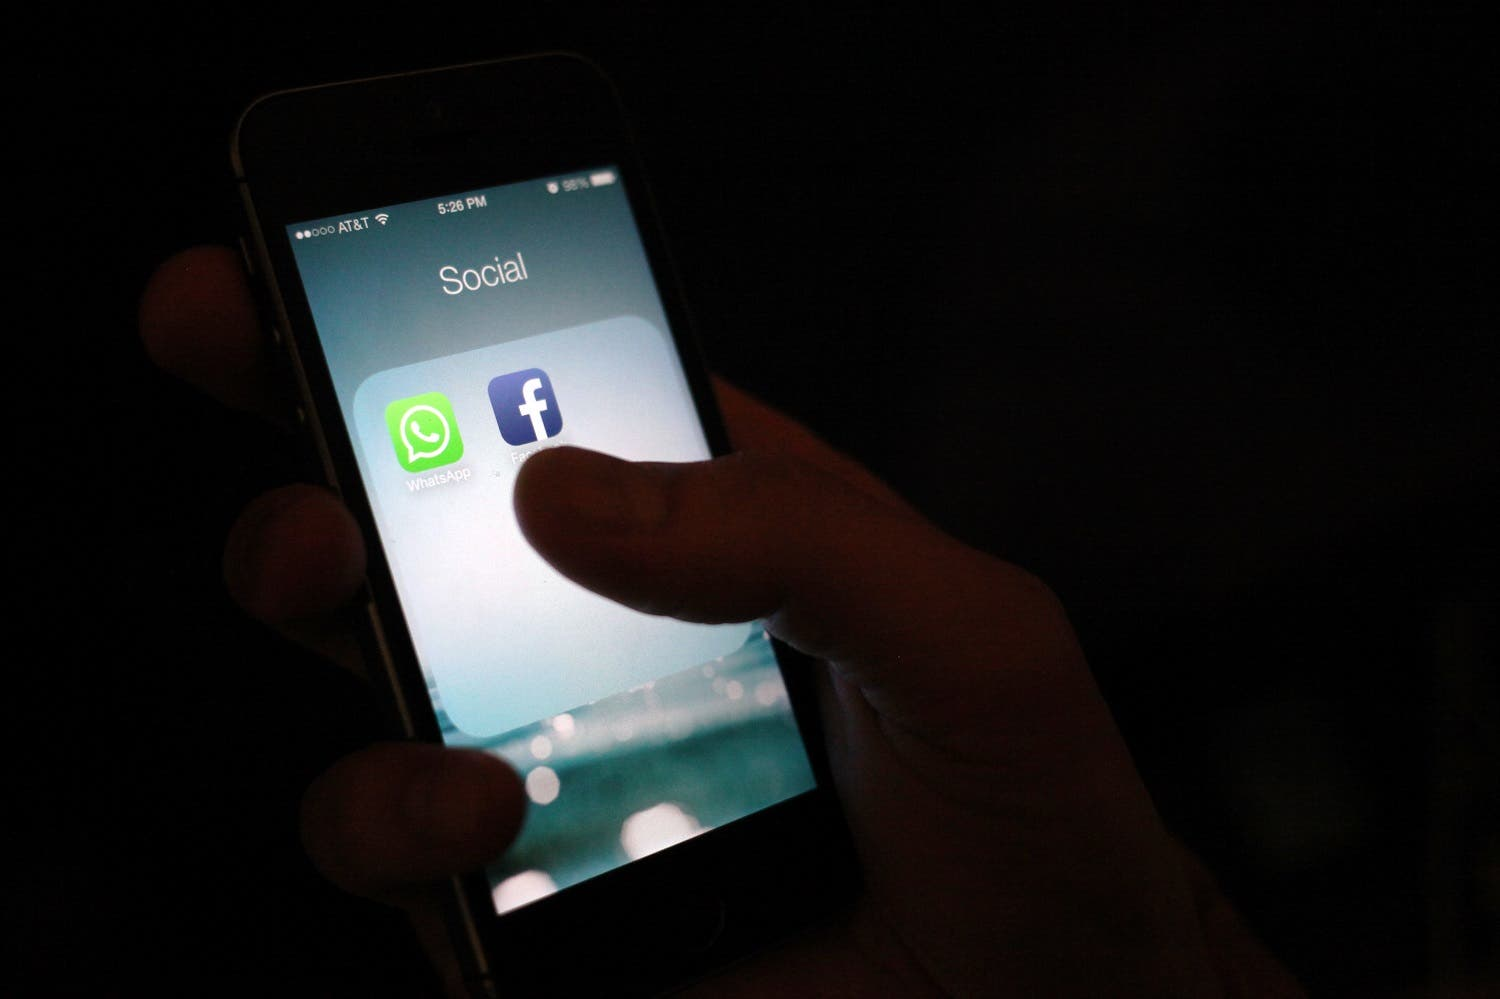 WhatsApp and Facebook app icons on an iPhone. (File photo: AP)